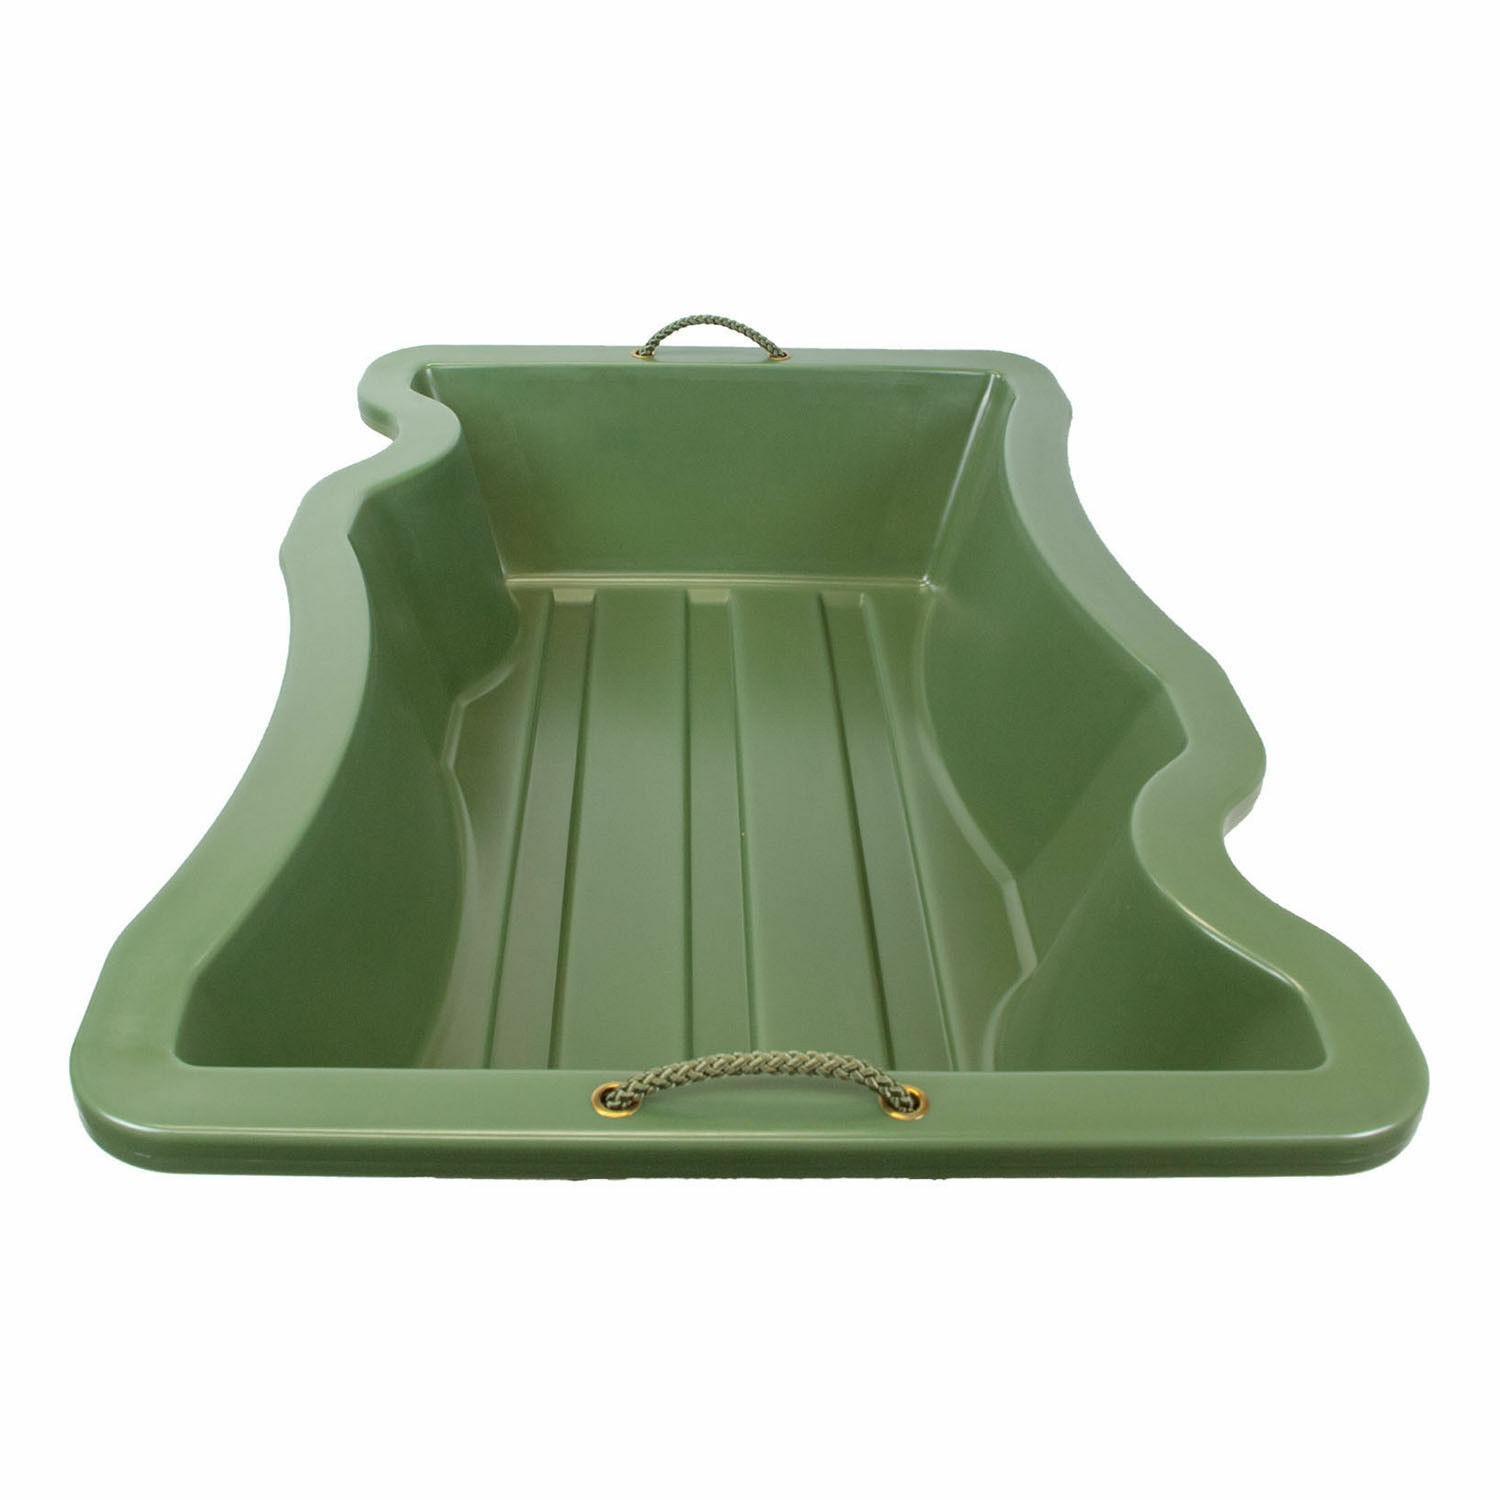 Wild tub   all purpose pan with slide function in Germany produces 110 L